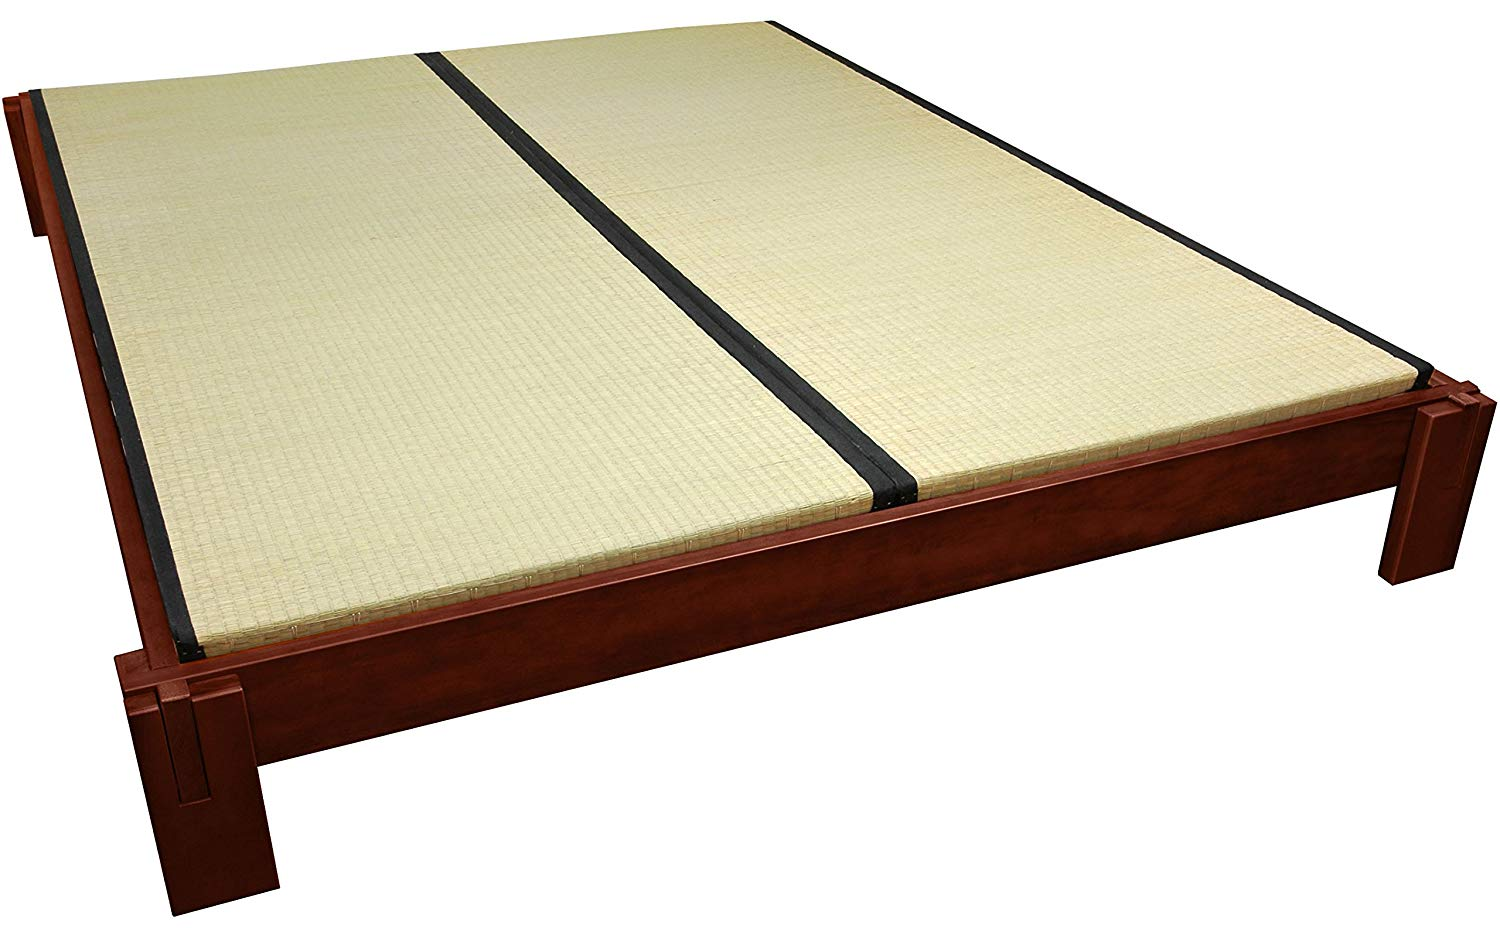 This Completely Diffe Tatami Platform Bed Is Offered By Oriental Furniture A Company Renowned For Its High Quality Items Following The Anese